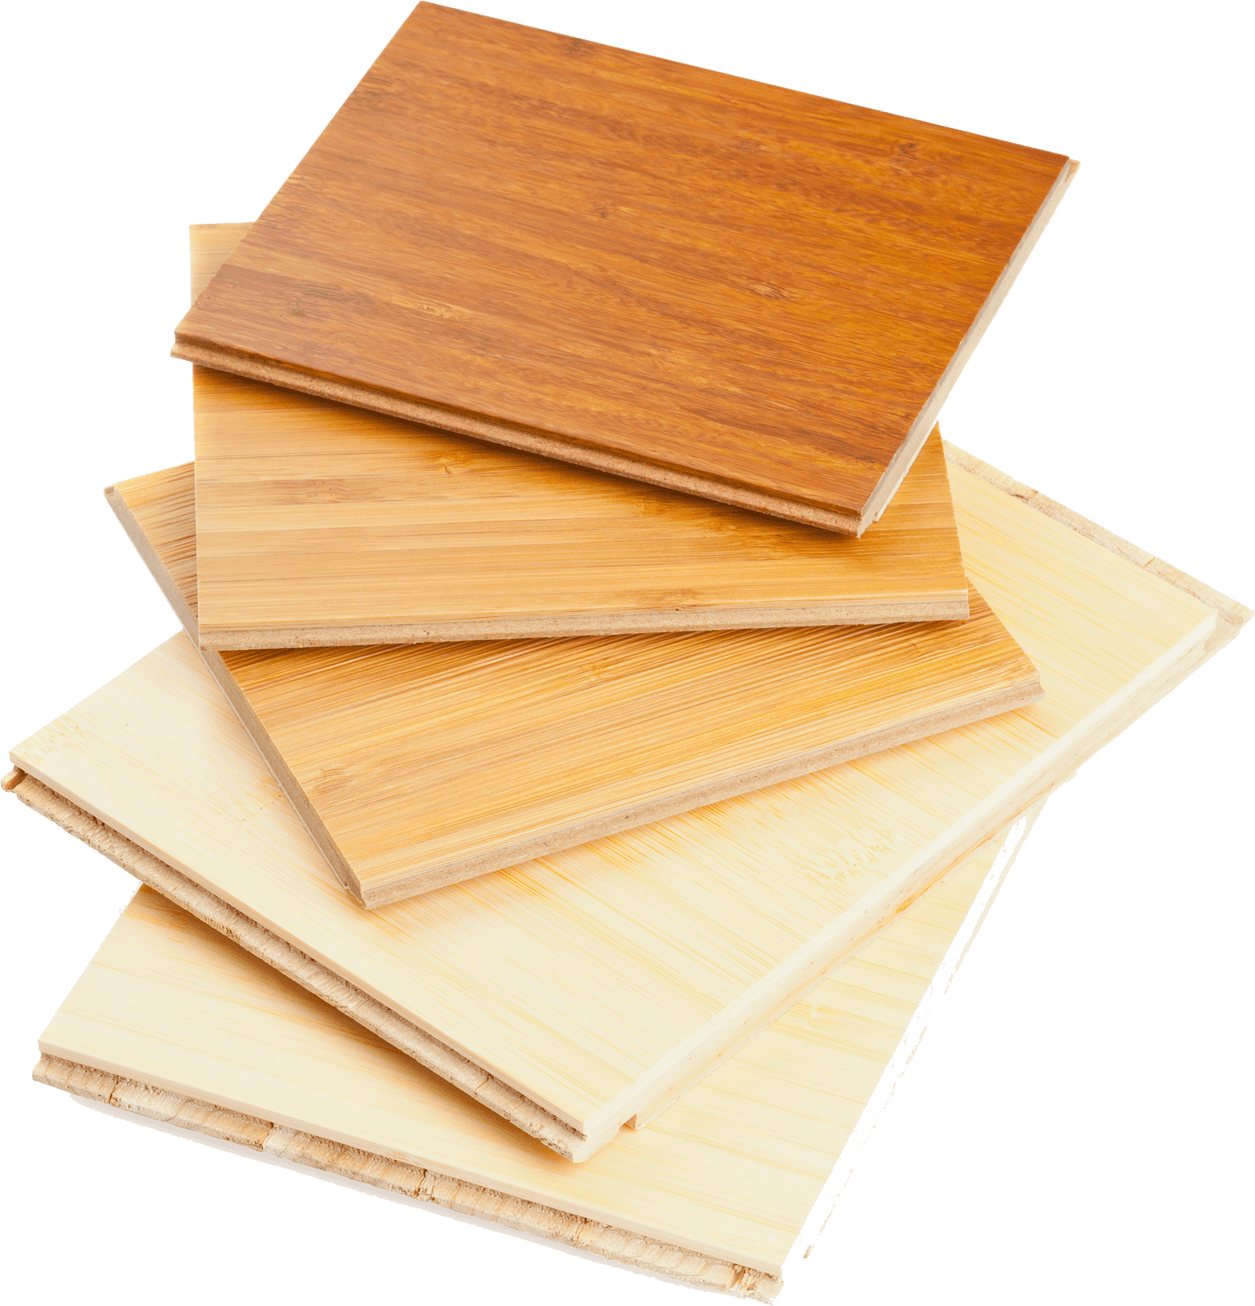 Bamboo flooring tiles to choose from